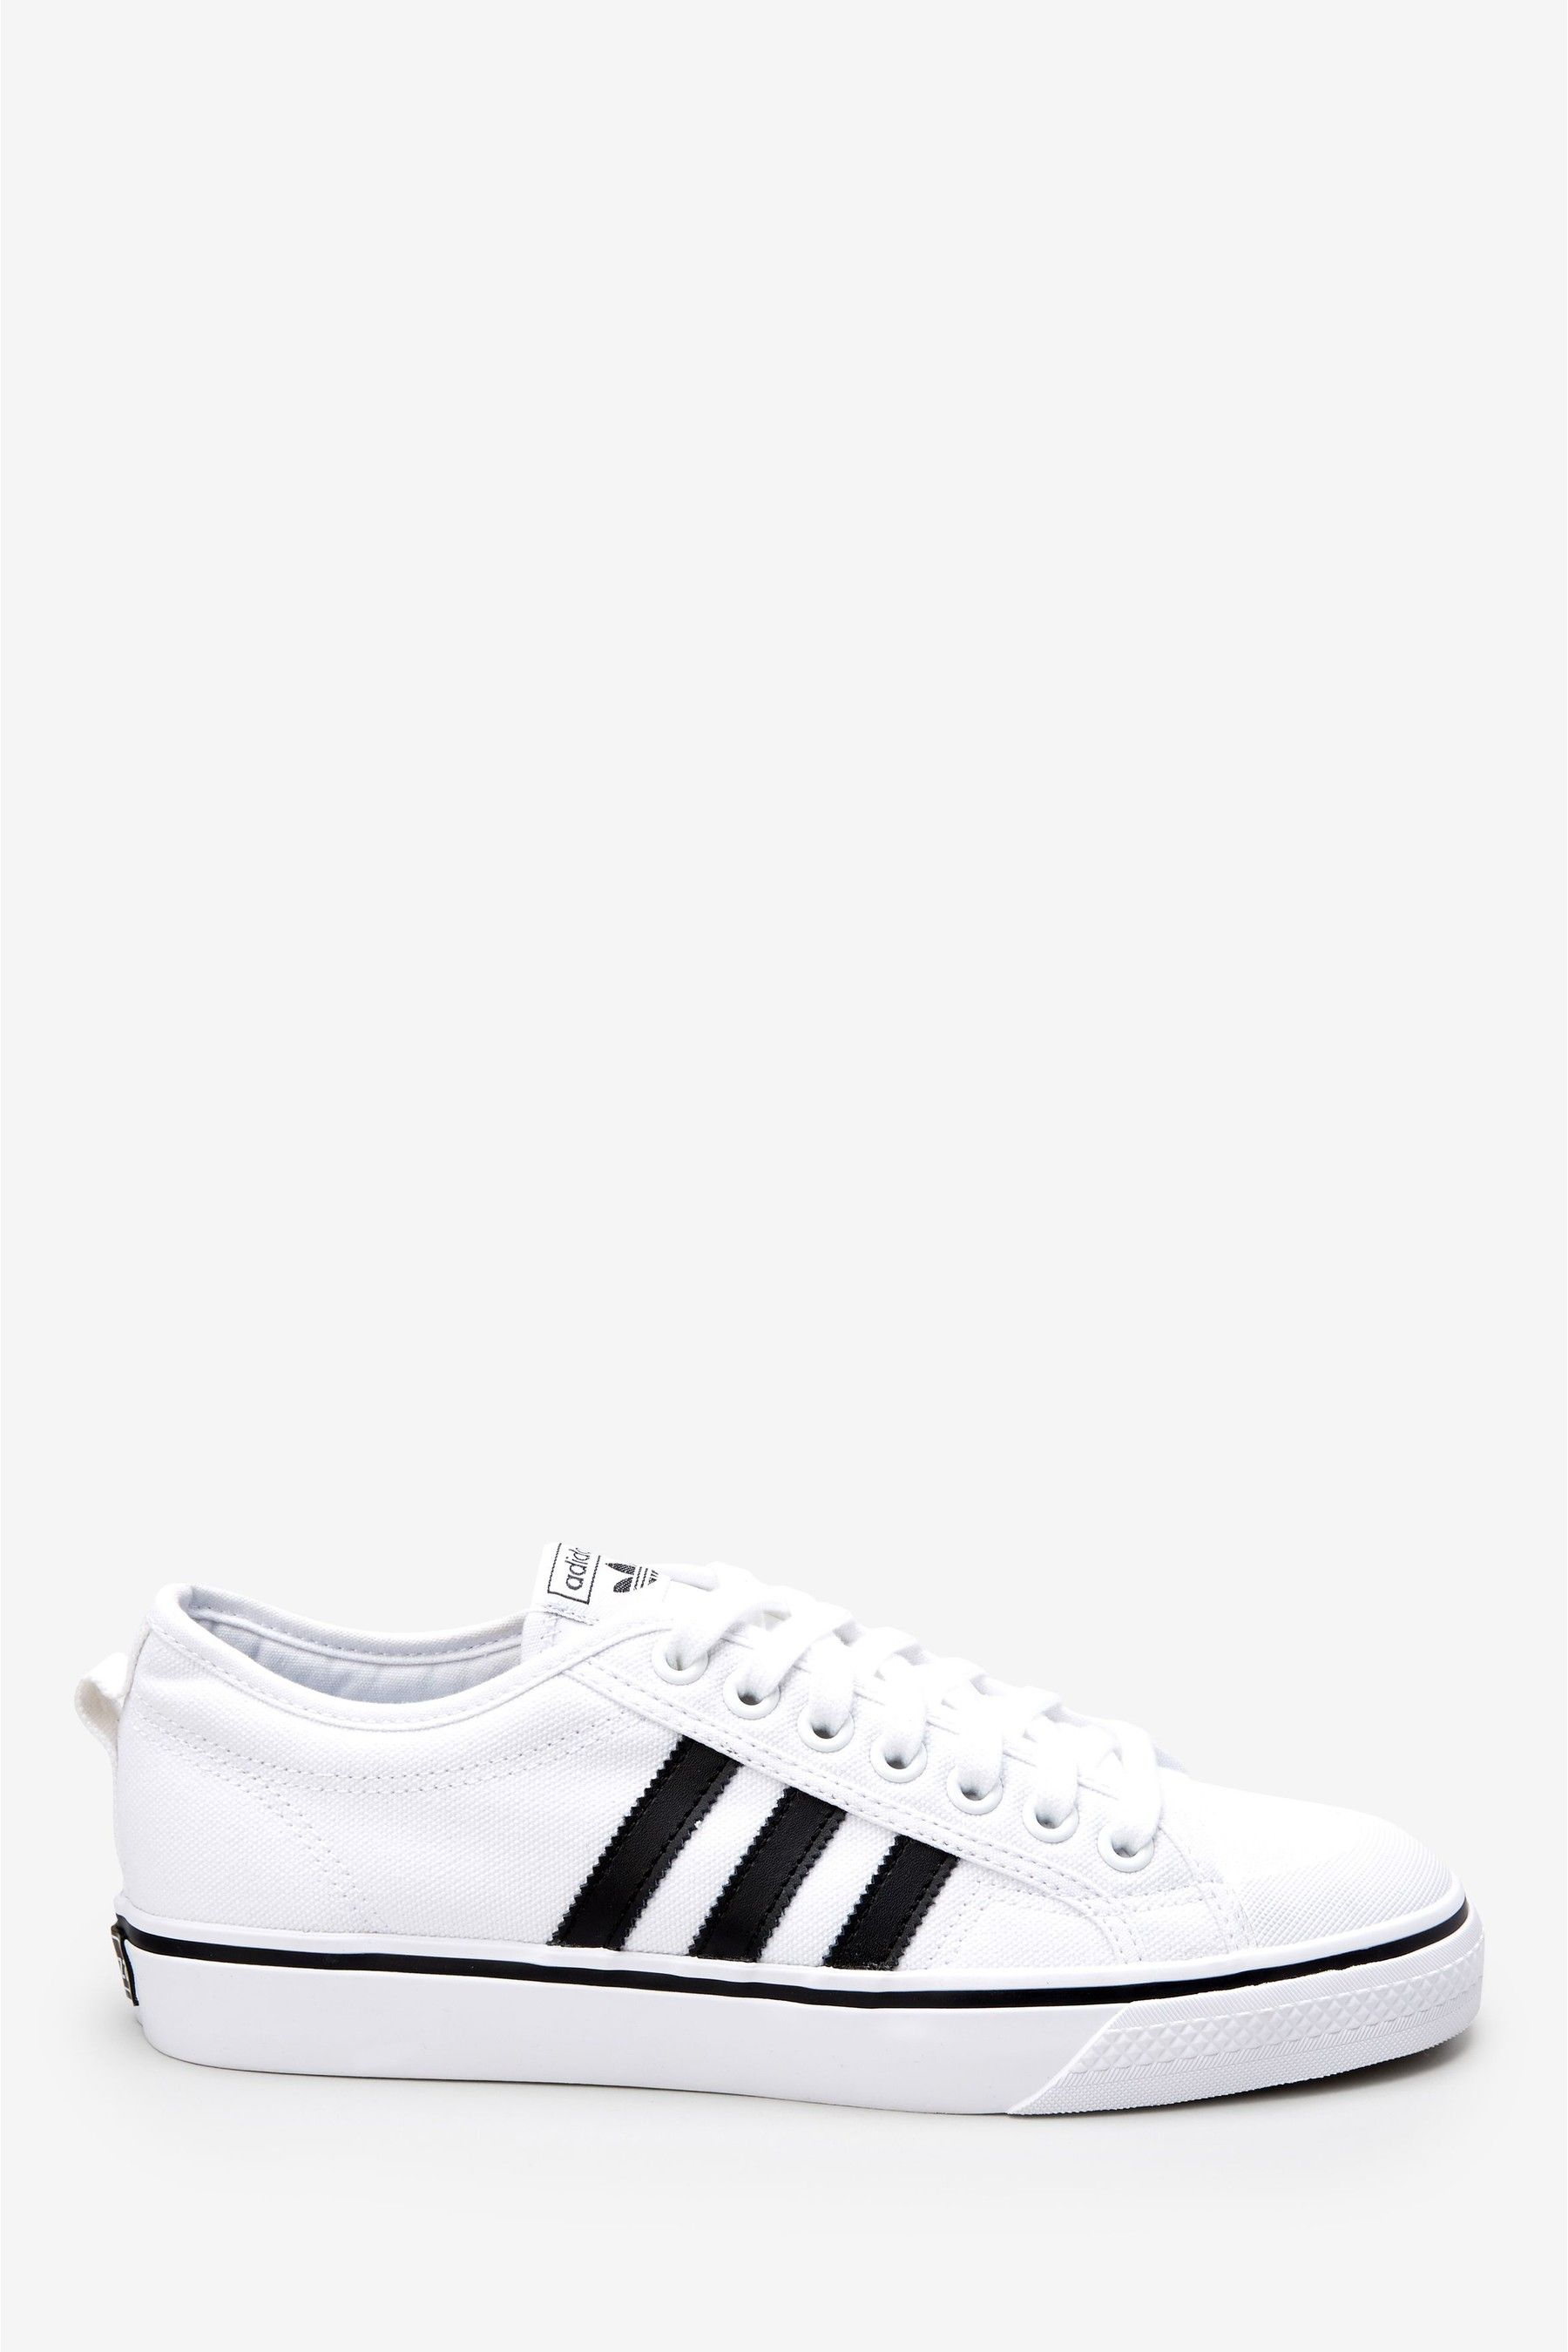 Adidas Shoes : UK official online shop,Shoe,Bags,Sneakers